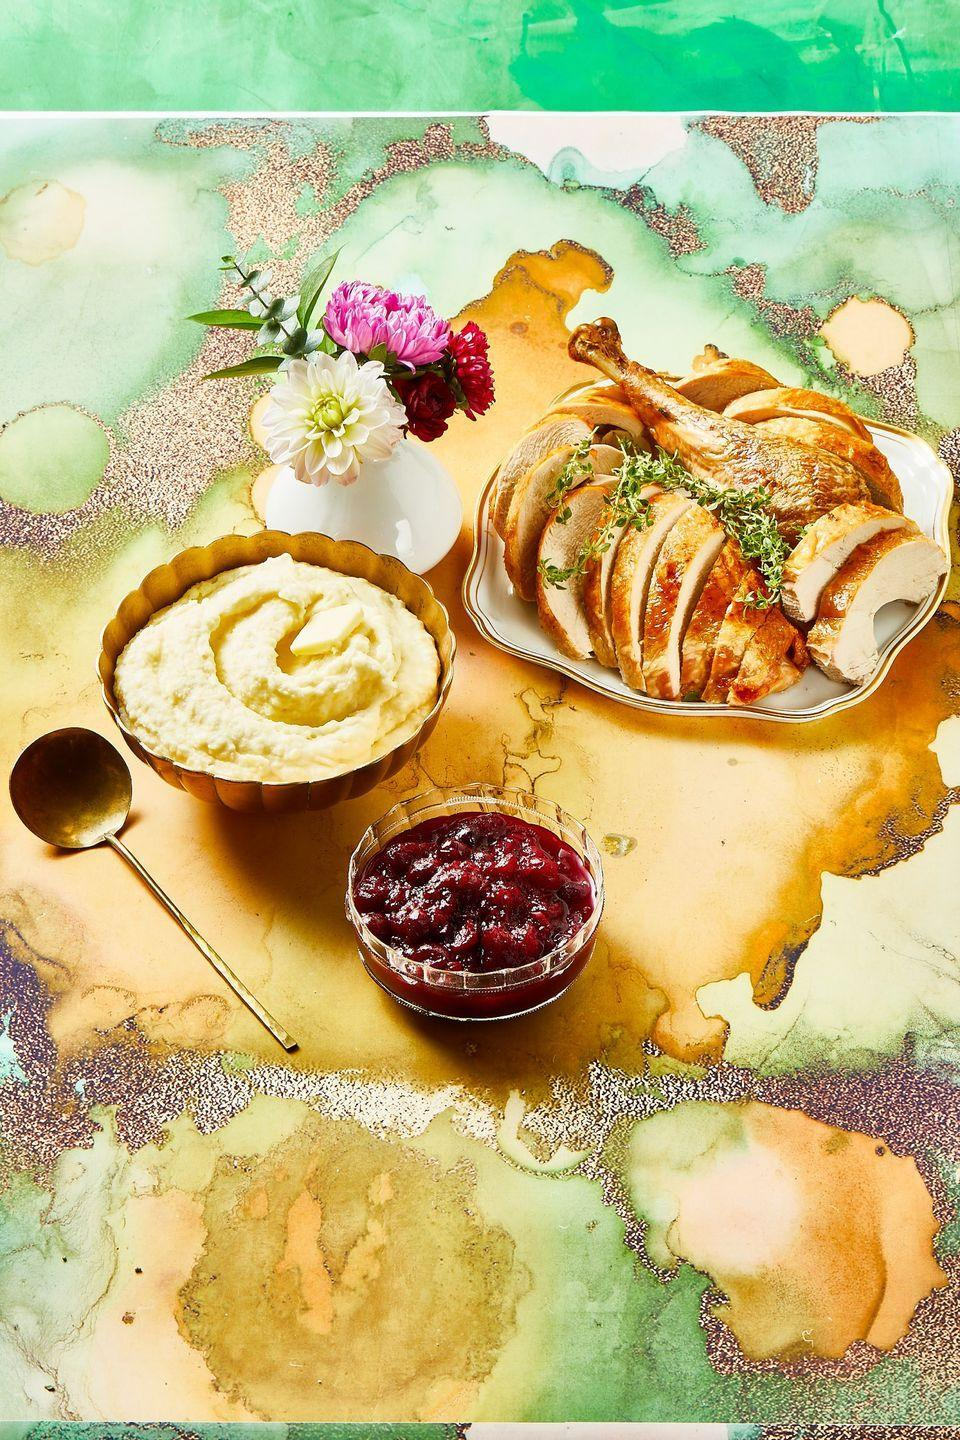 """<p>Fresh apples lend sweetness (and festive fall flavor), while the orange zest and juice keep it tangy.</p><p><strong><em><a href=""""https://www.womansday.com/food-recipes/a34128863/apple-orange-cranberry-sauce-recipe/"""" rel=""""nofollow noopener"""" target=""""_blank"""" data-ylk=""""slk:Get the Apple-Orange Cranberry Sauce recipe."""" class=""""link rapid-noclick-resp"""">Get the Apple-Orange Cranberry Sauce recipe. </a></em></strong></p>"""